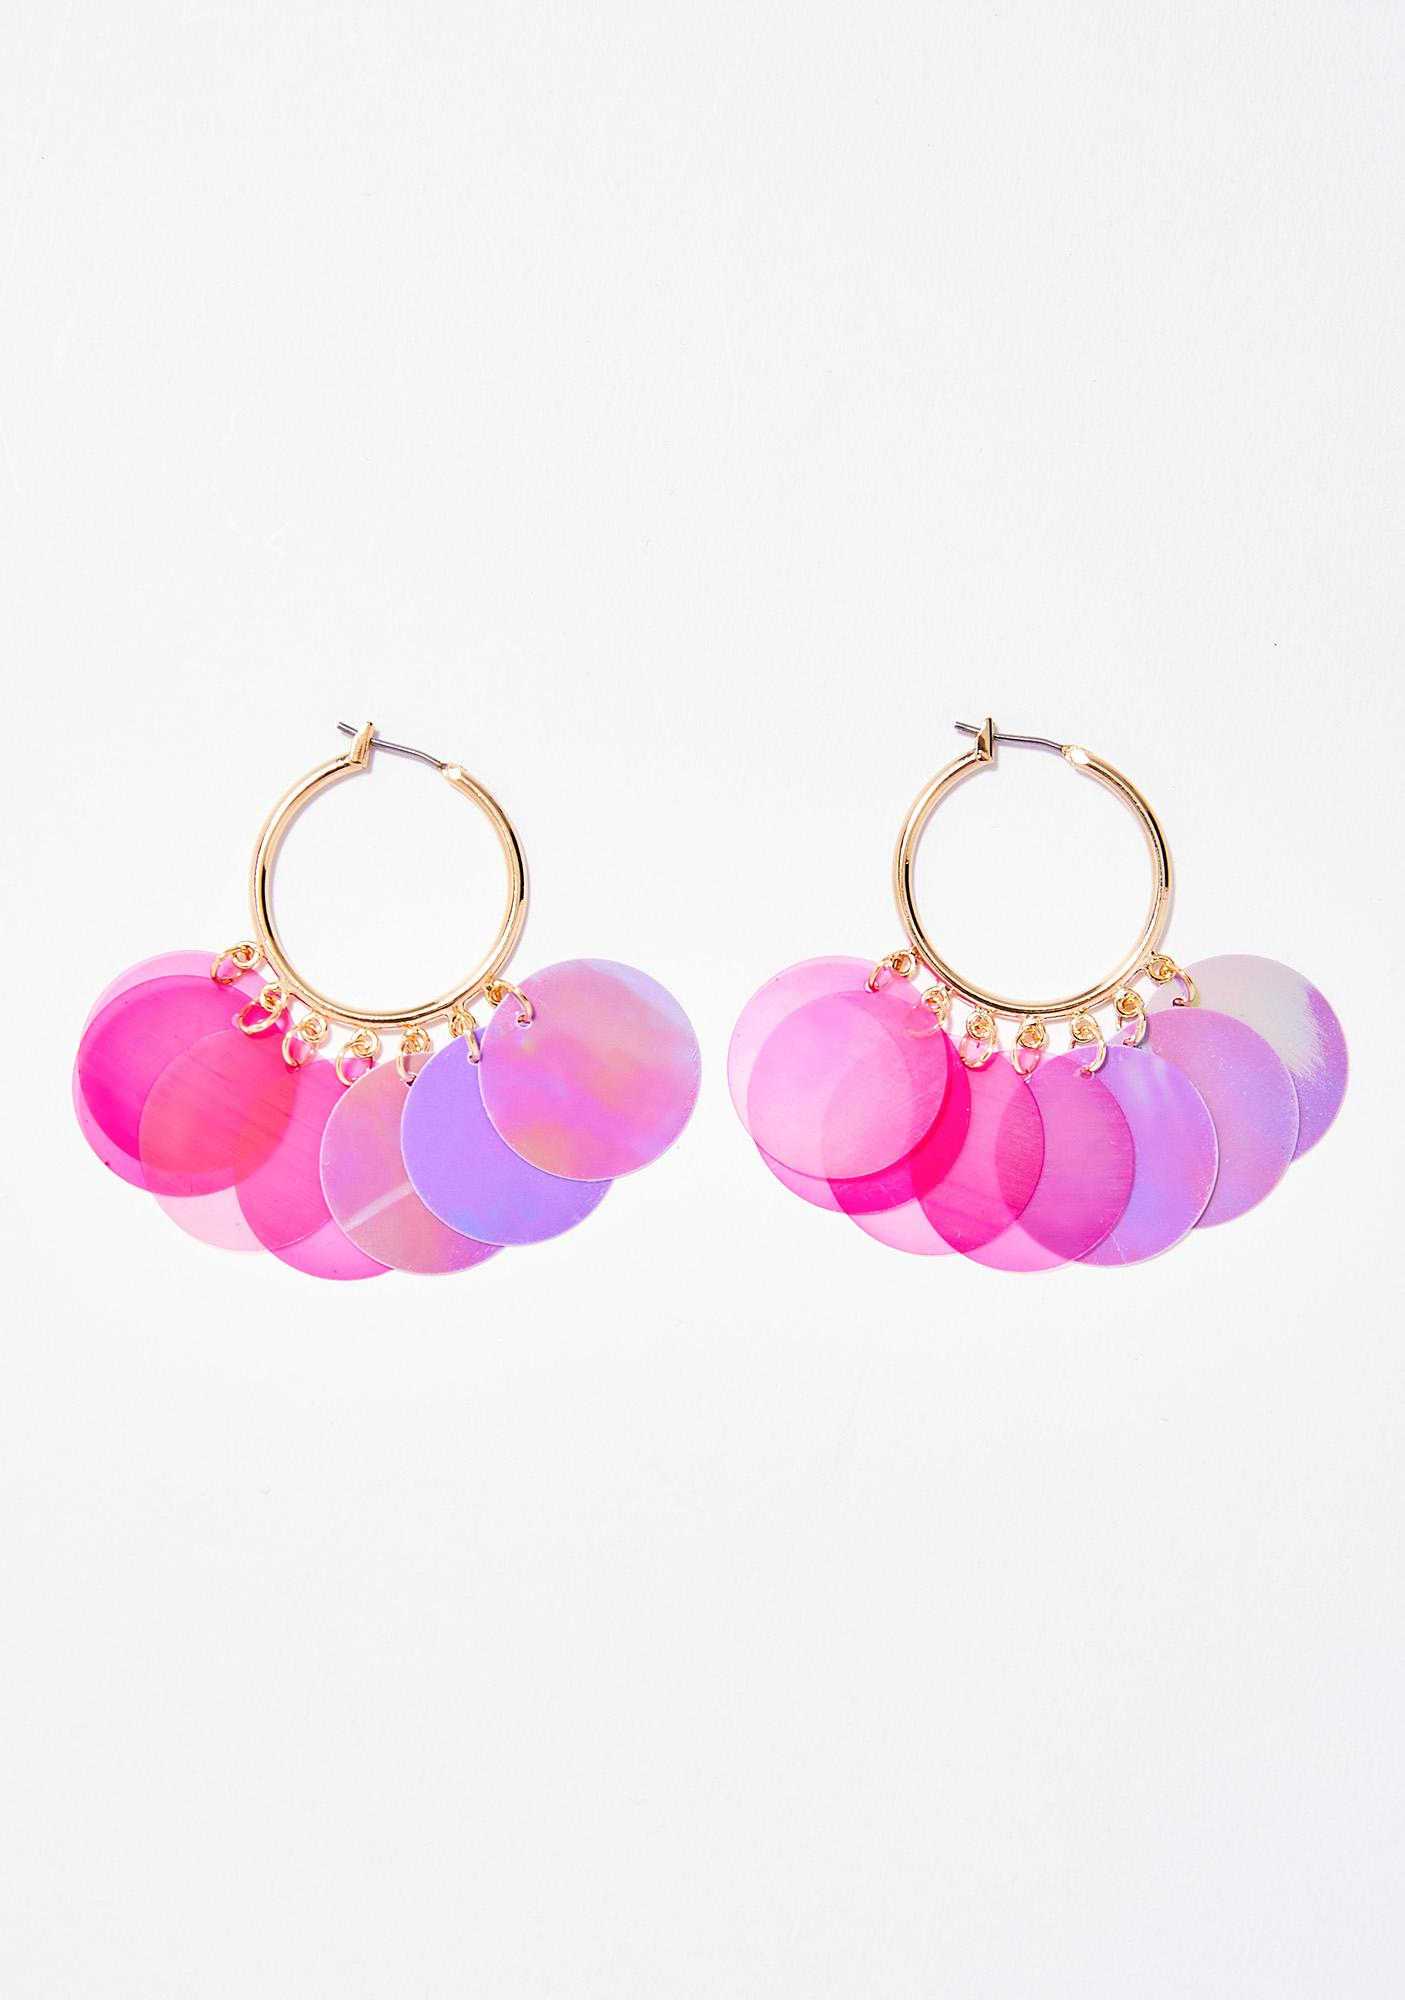 Sweet Celestial Fairy Metallic Earrings